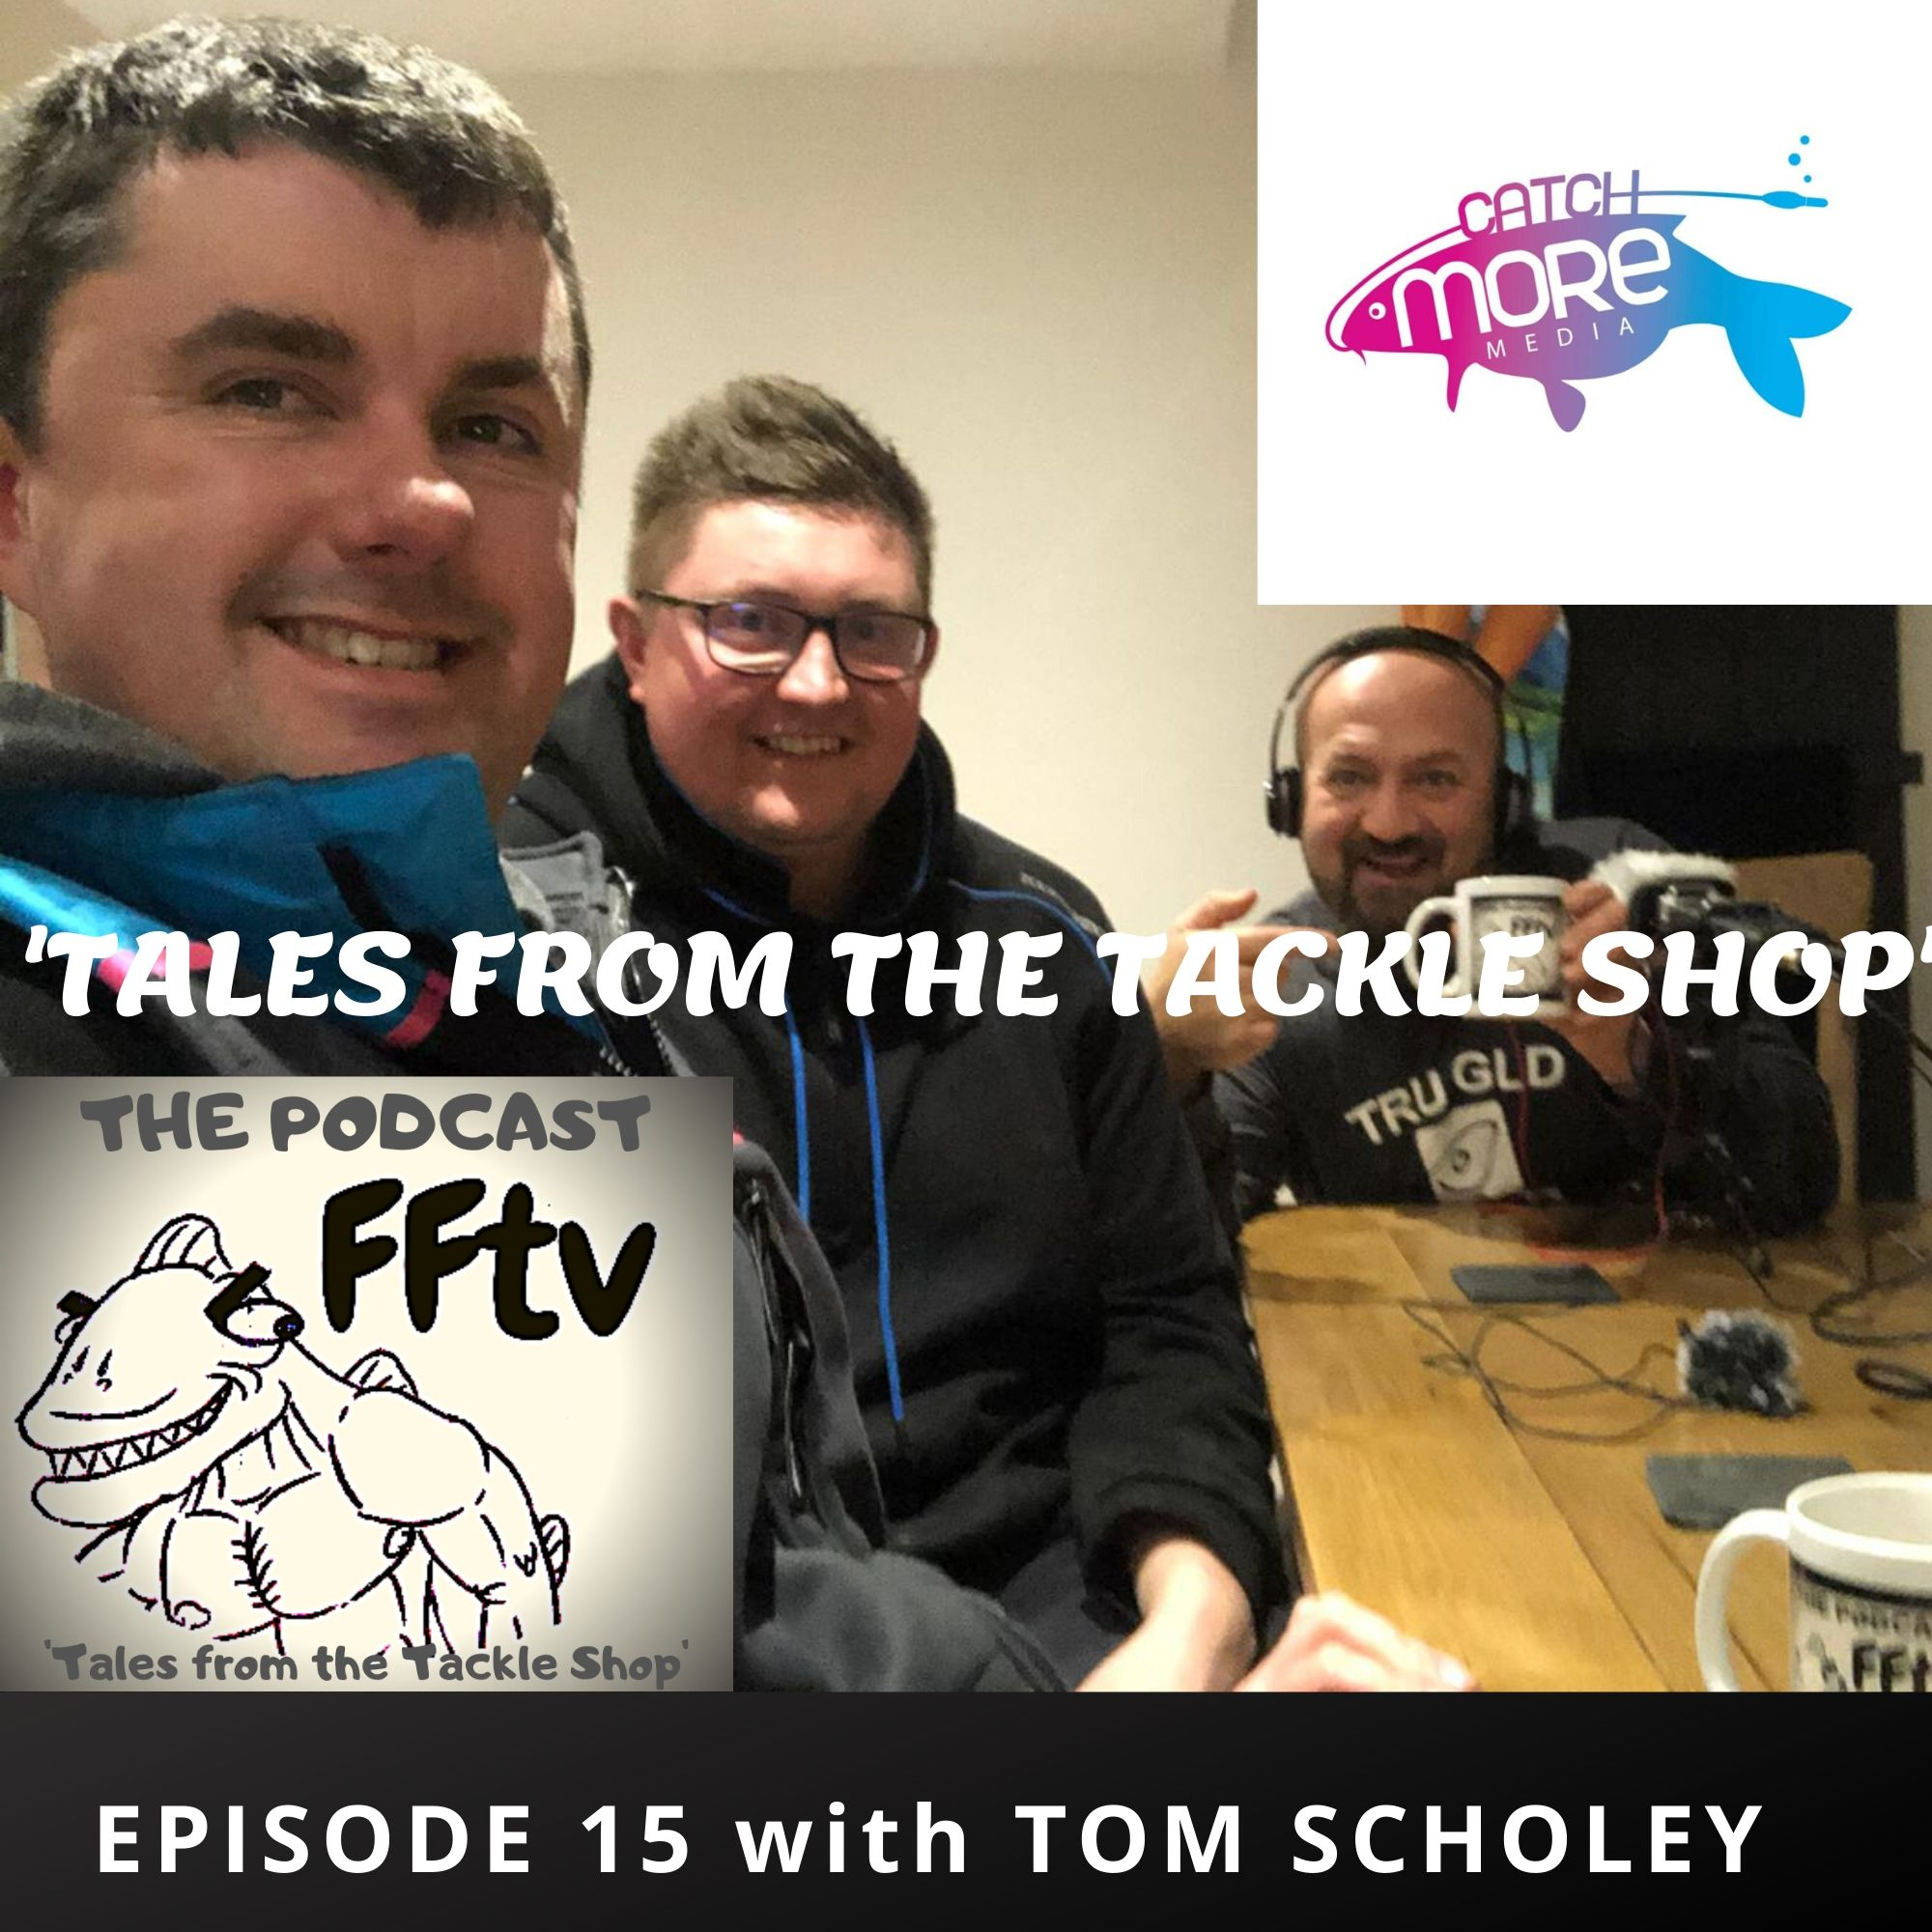 Episode 15 with guest Tom Scholey